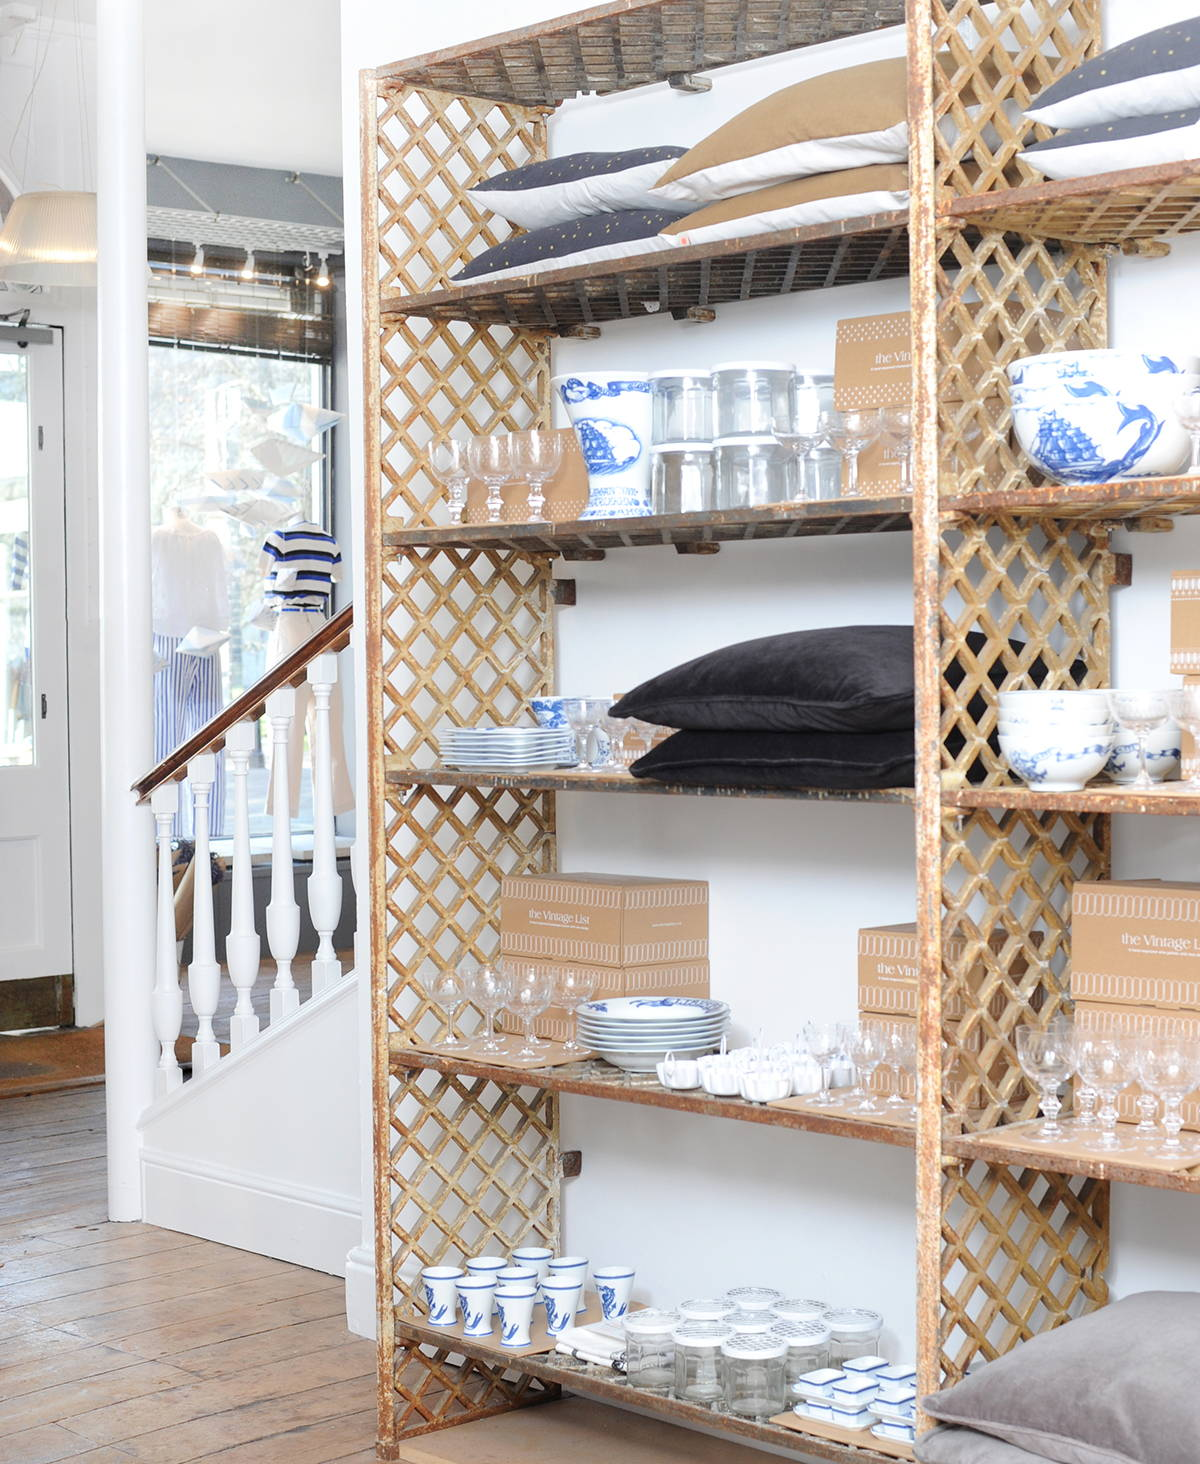 The Metal Shelves with Homewares